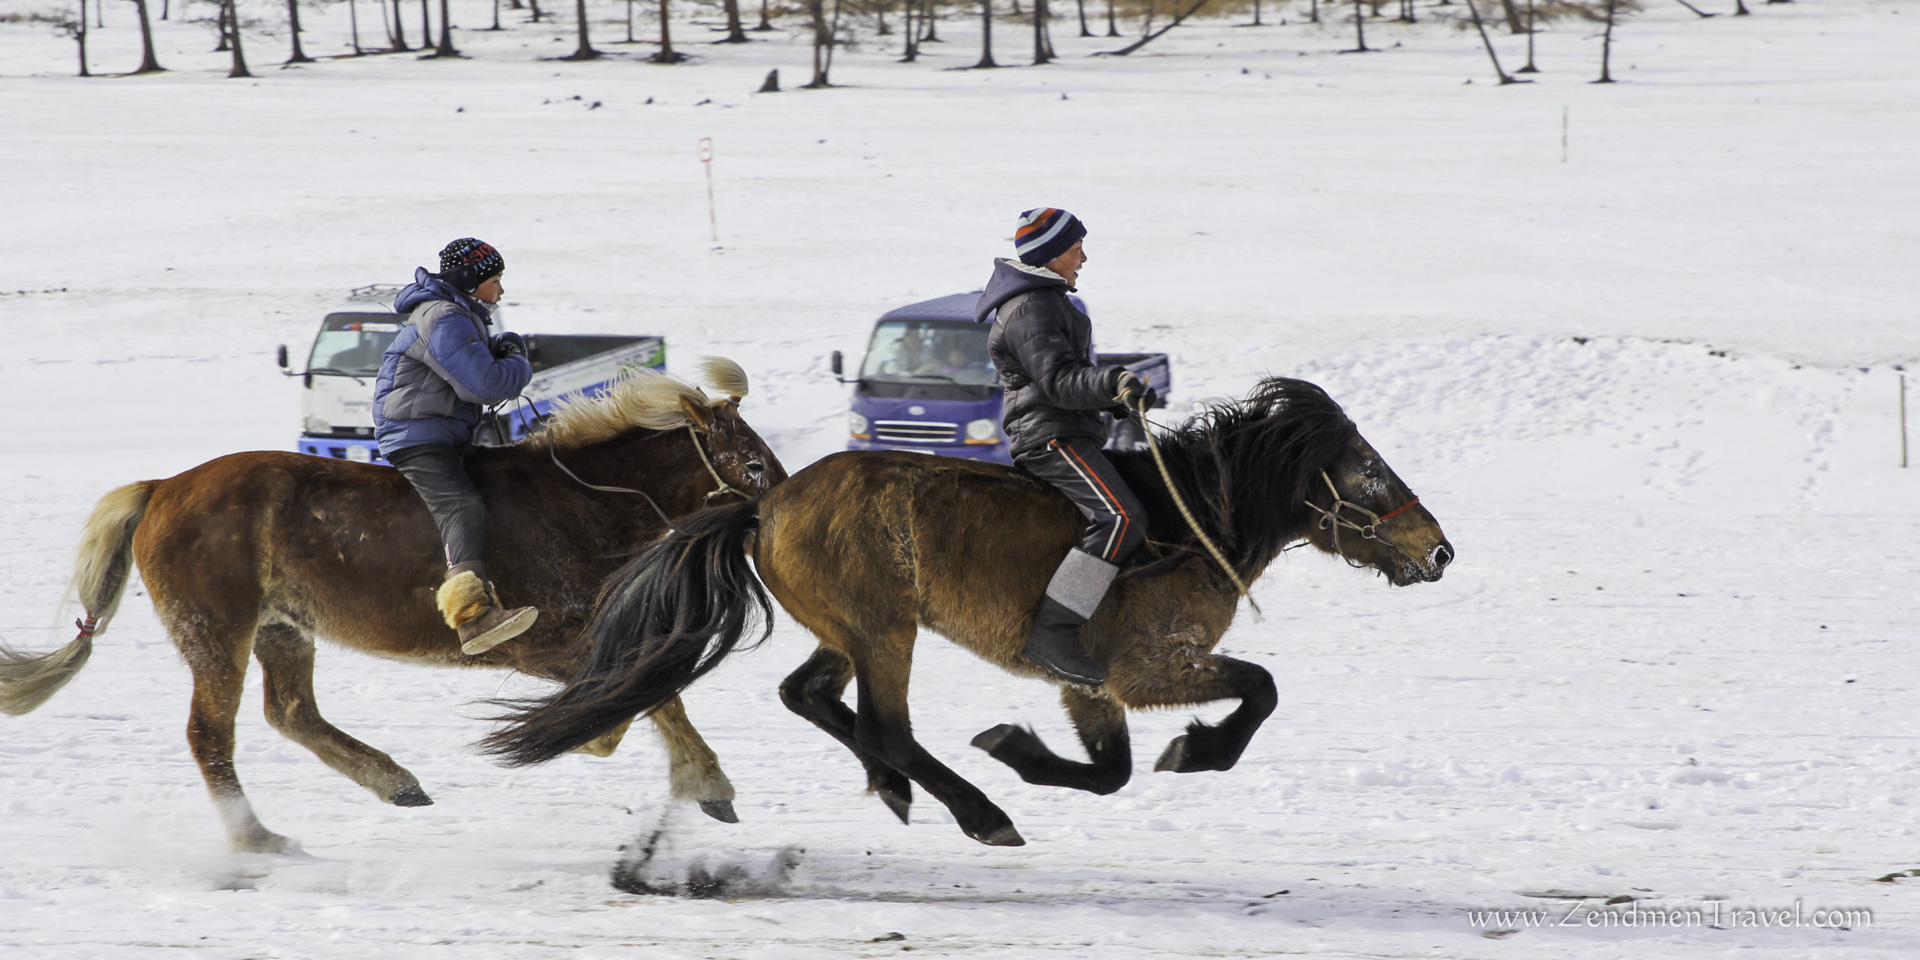 horse race during winter